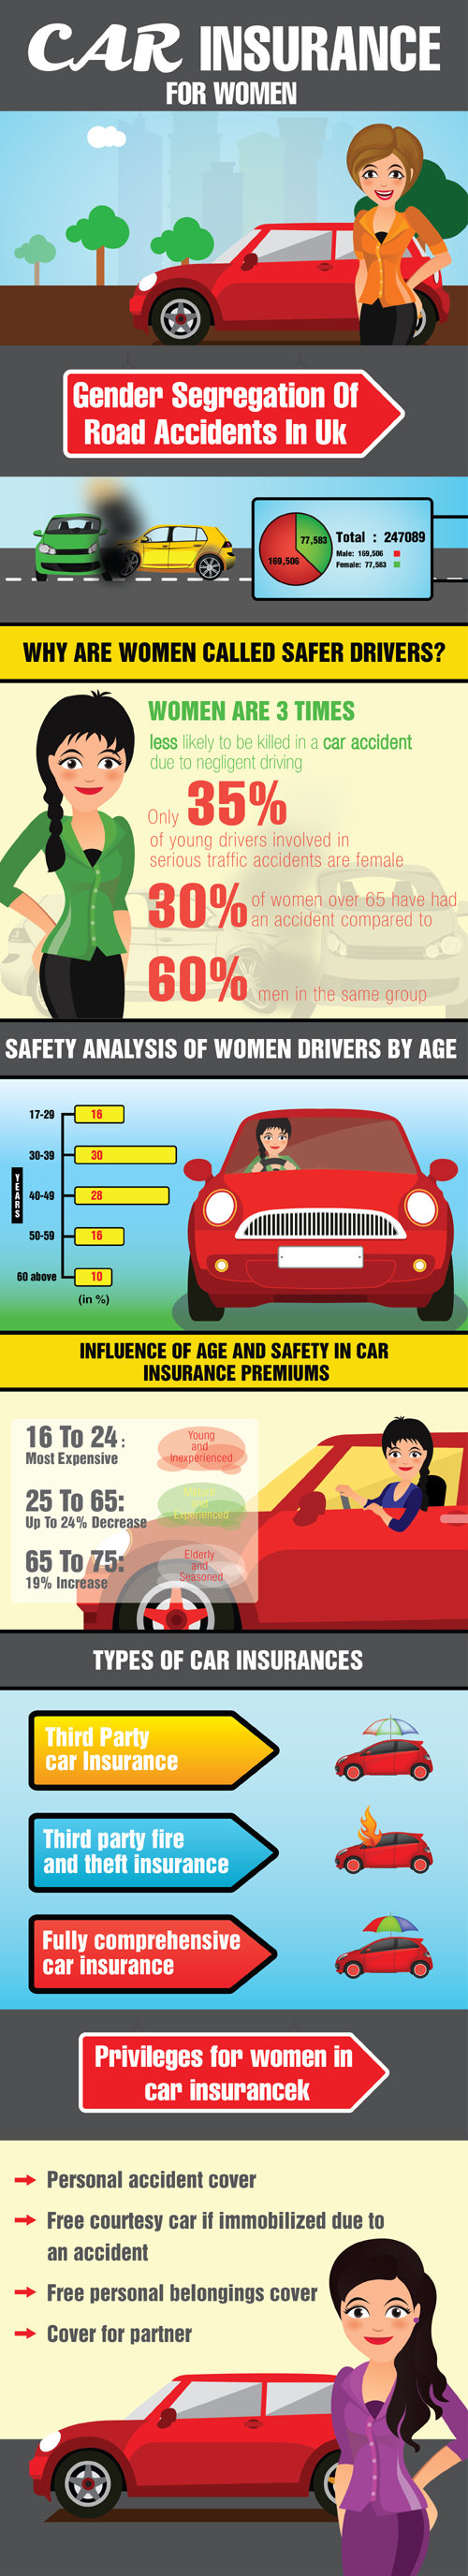 car-insurance-for-women-infographic-plaza